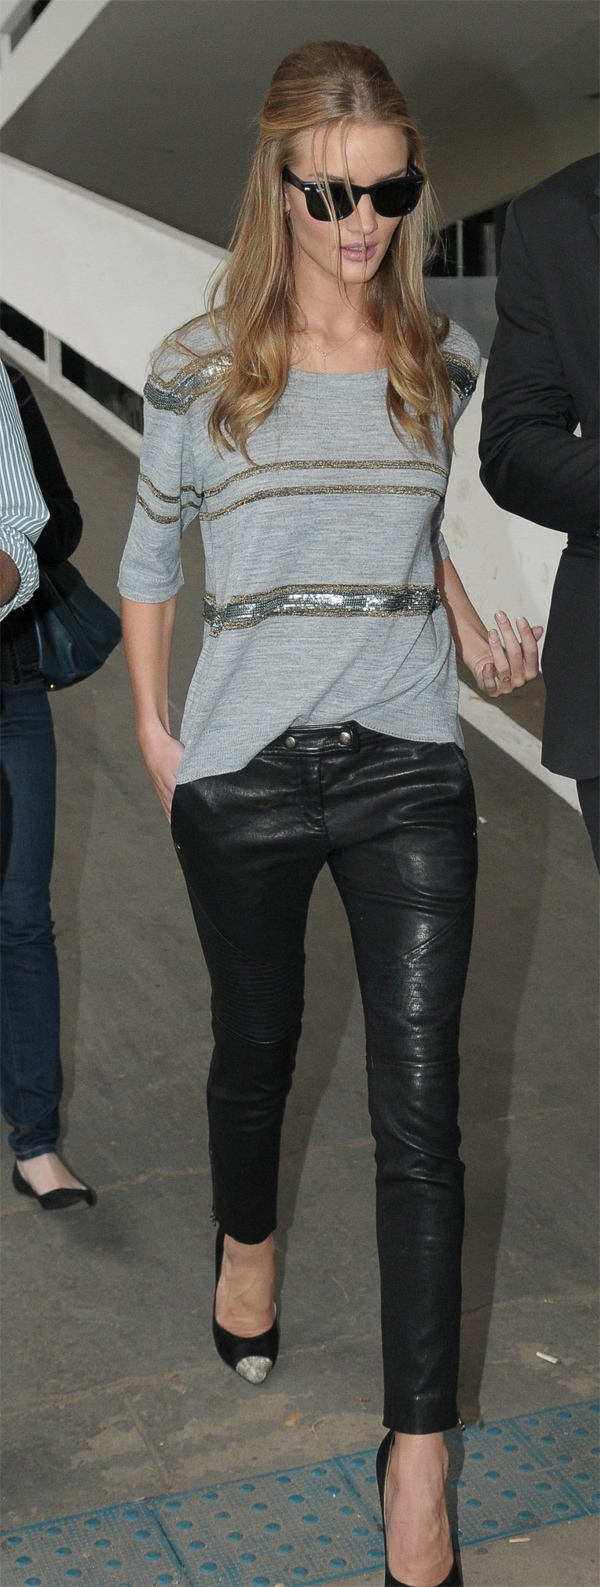 Rosie Huntington-Whiteley leaving after the Animale Fashion Show